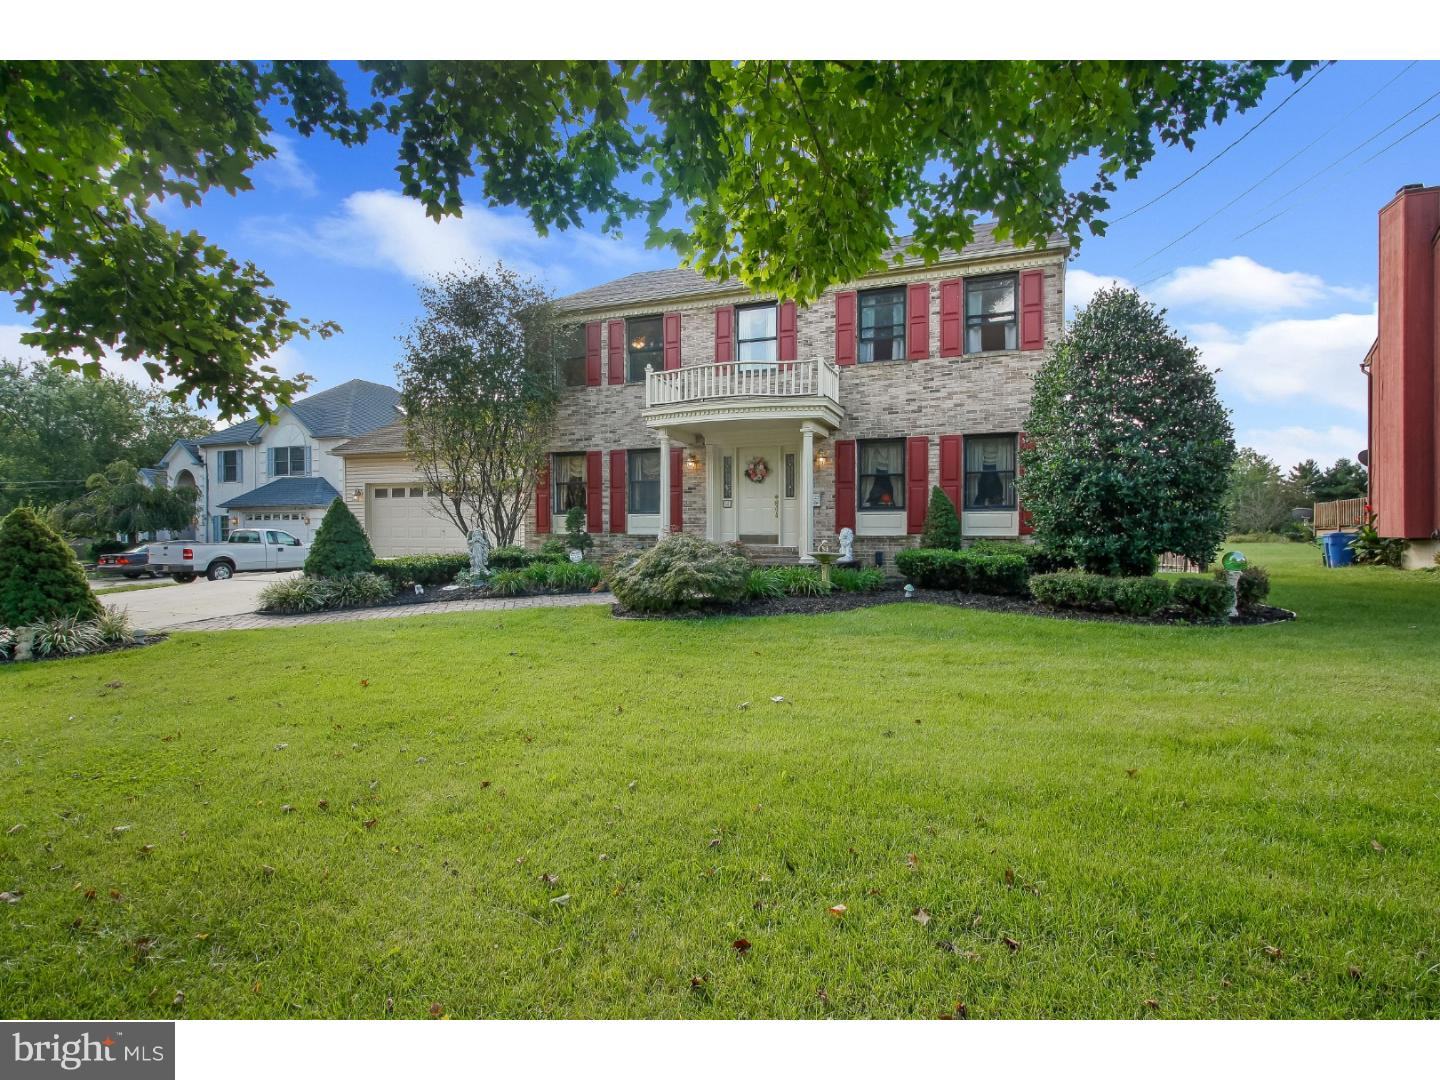 58 OVERBROOK DRIVE, CHERRY HILL, NJ 08002